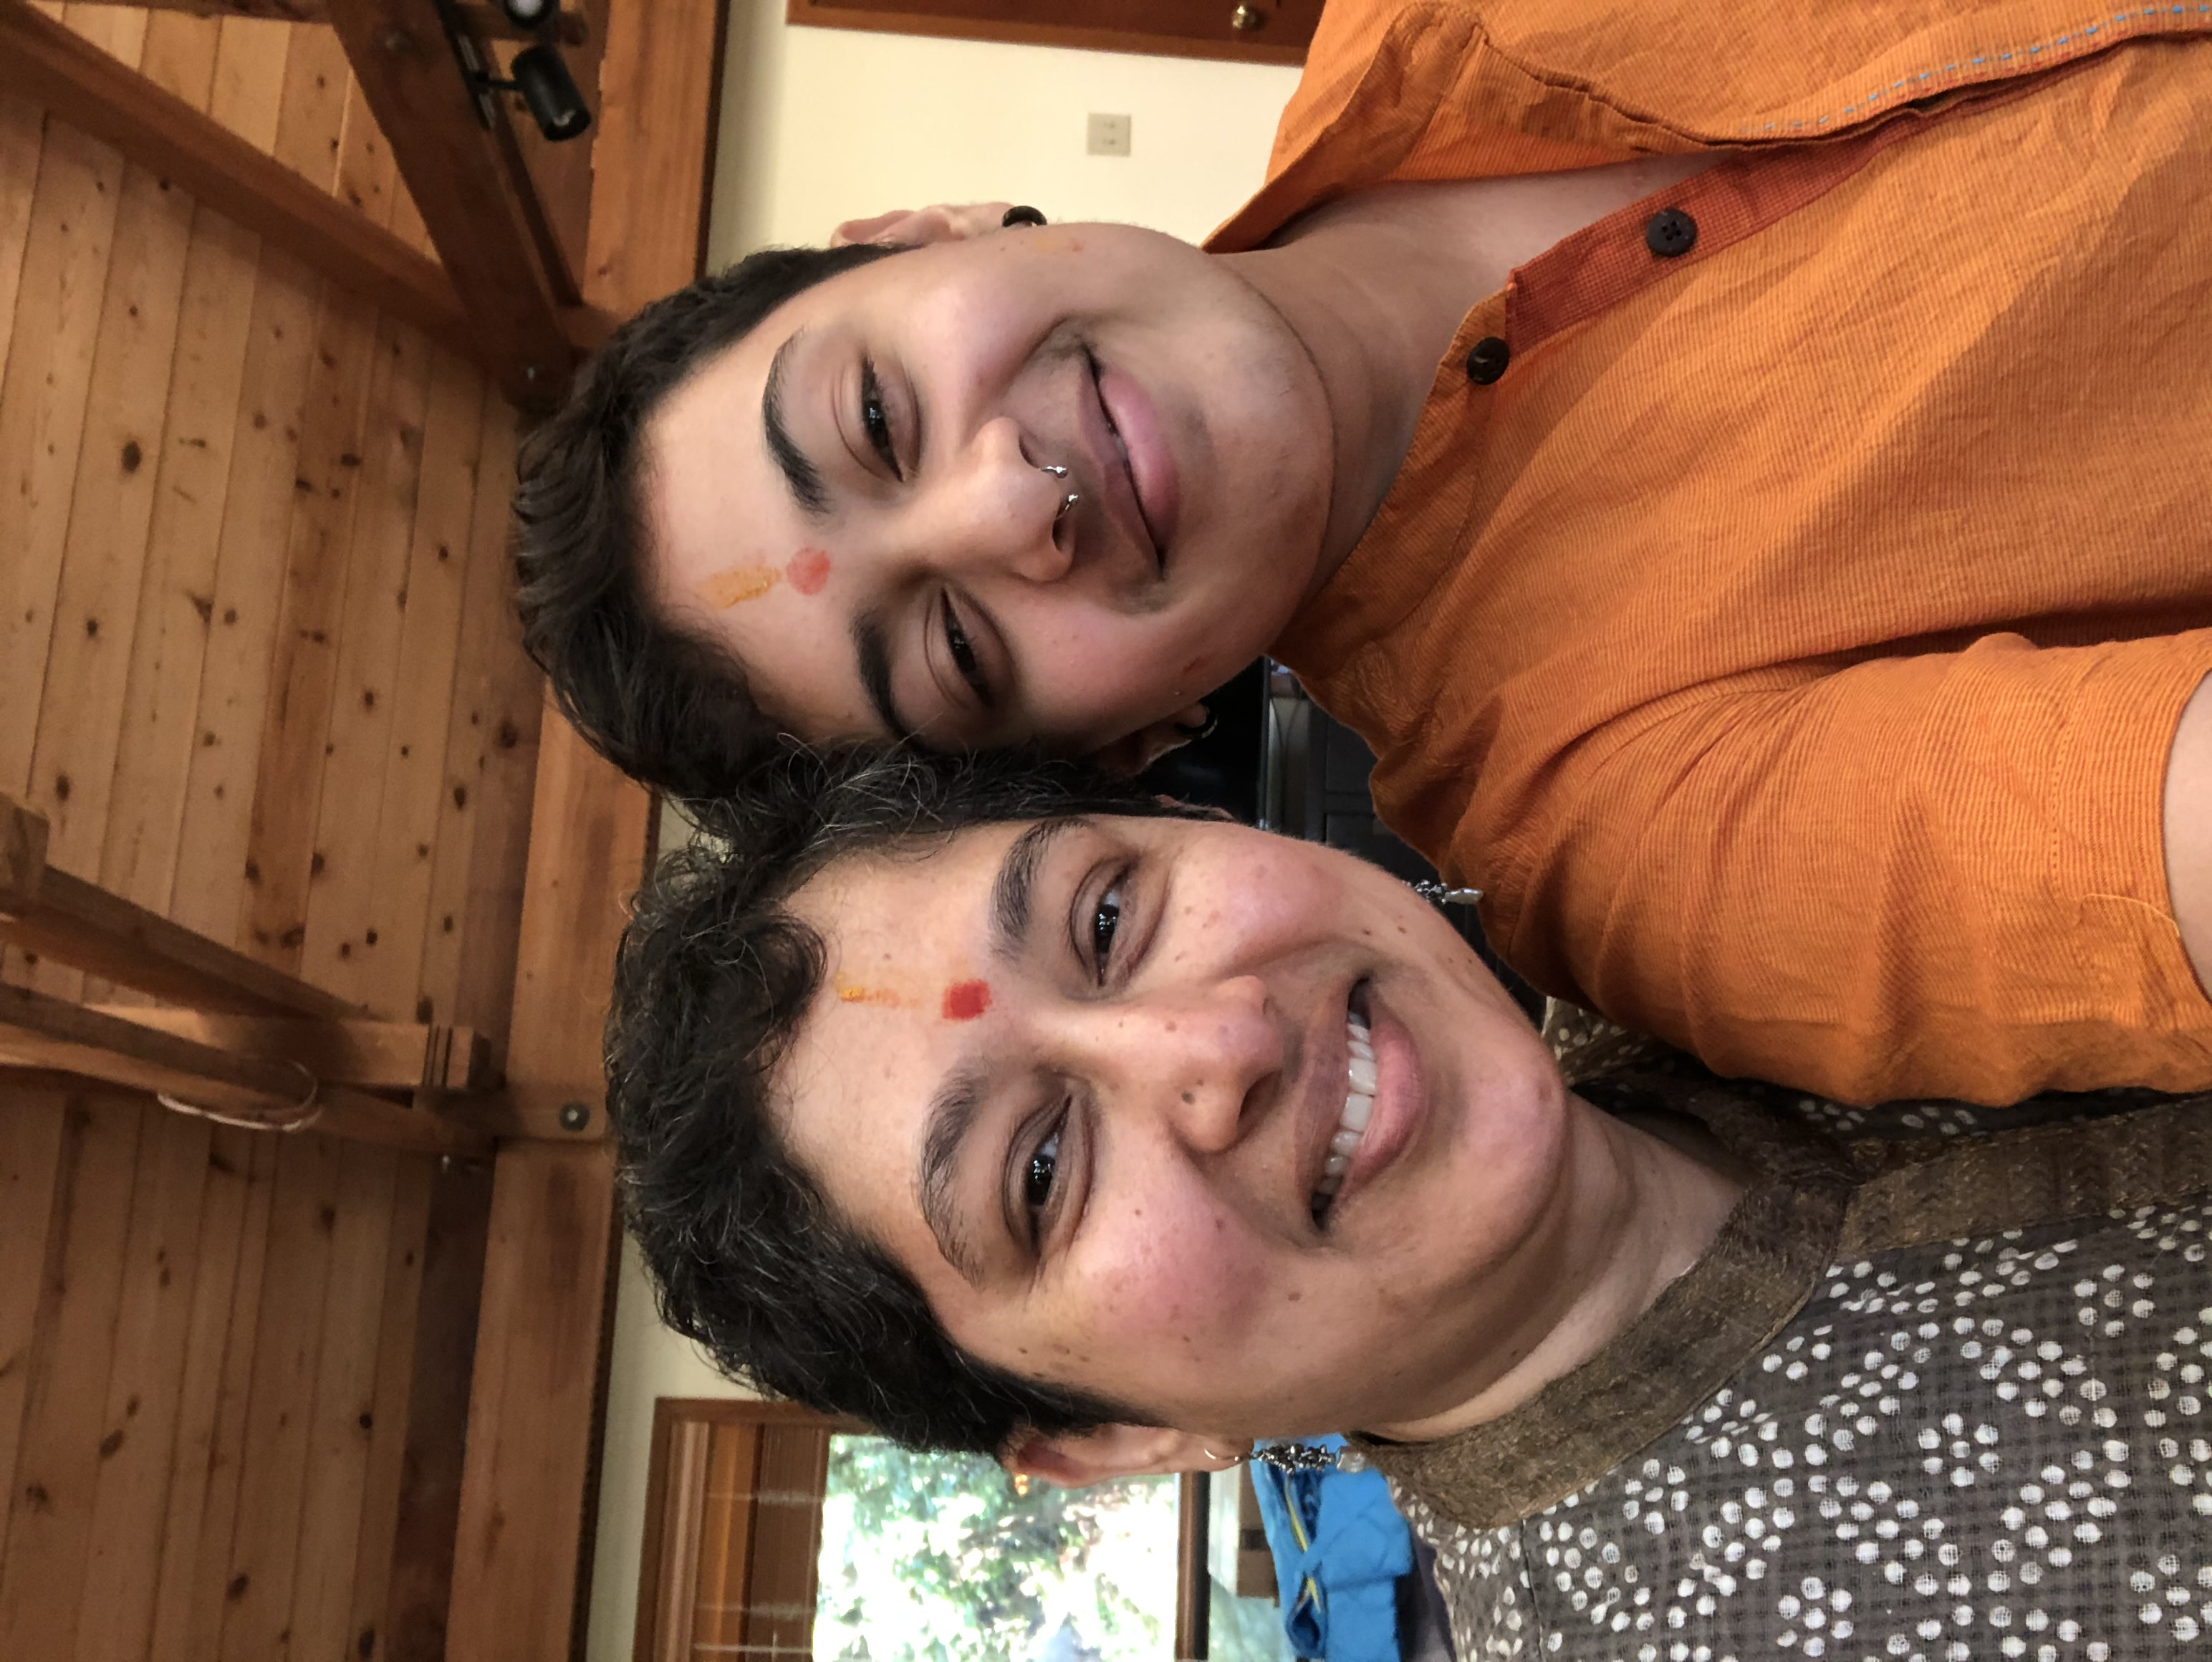 Hindu mother and son smile together